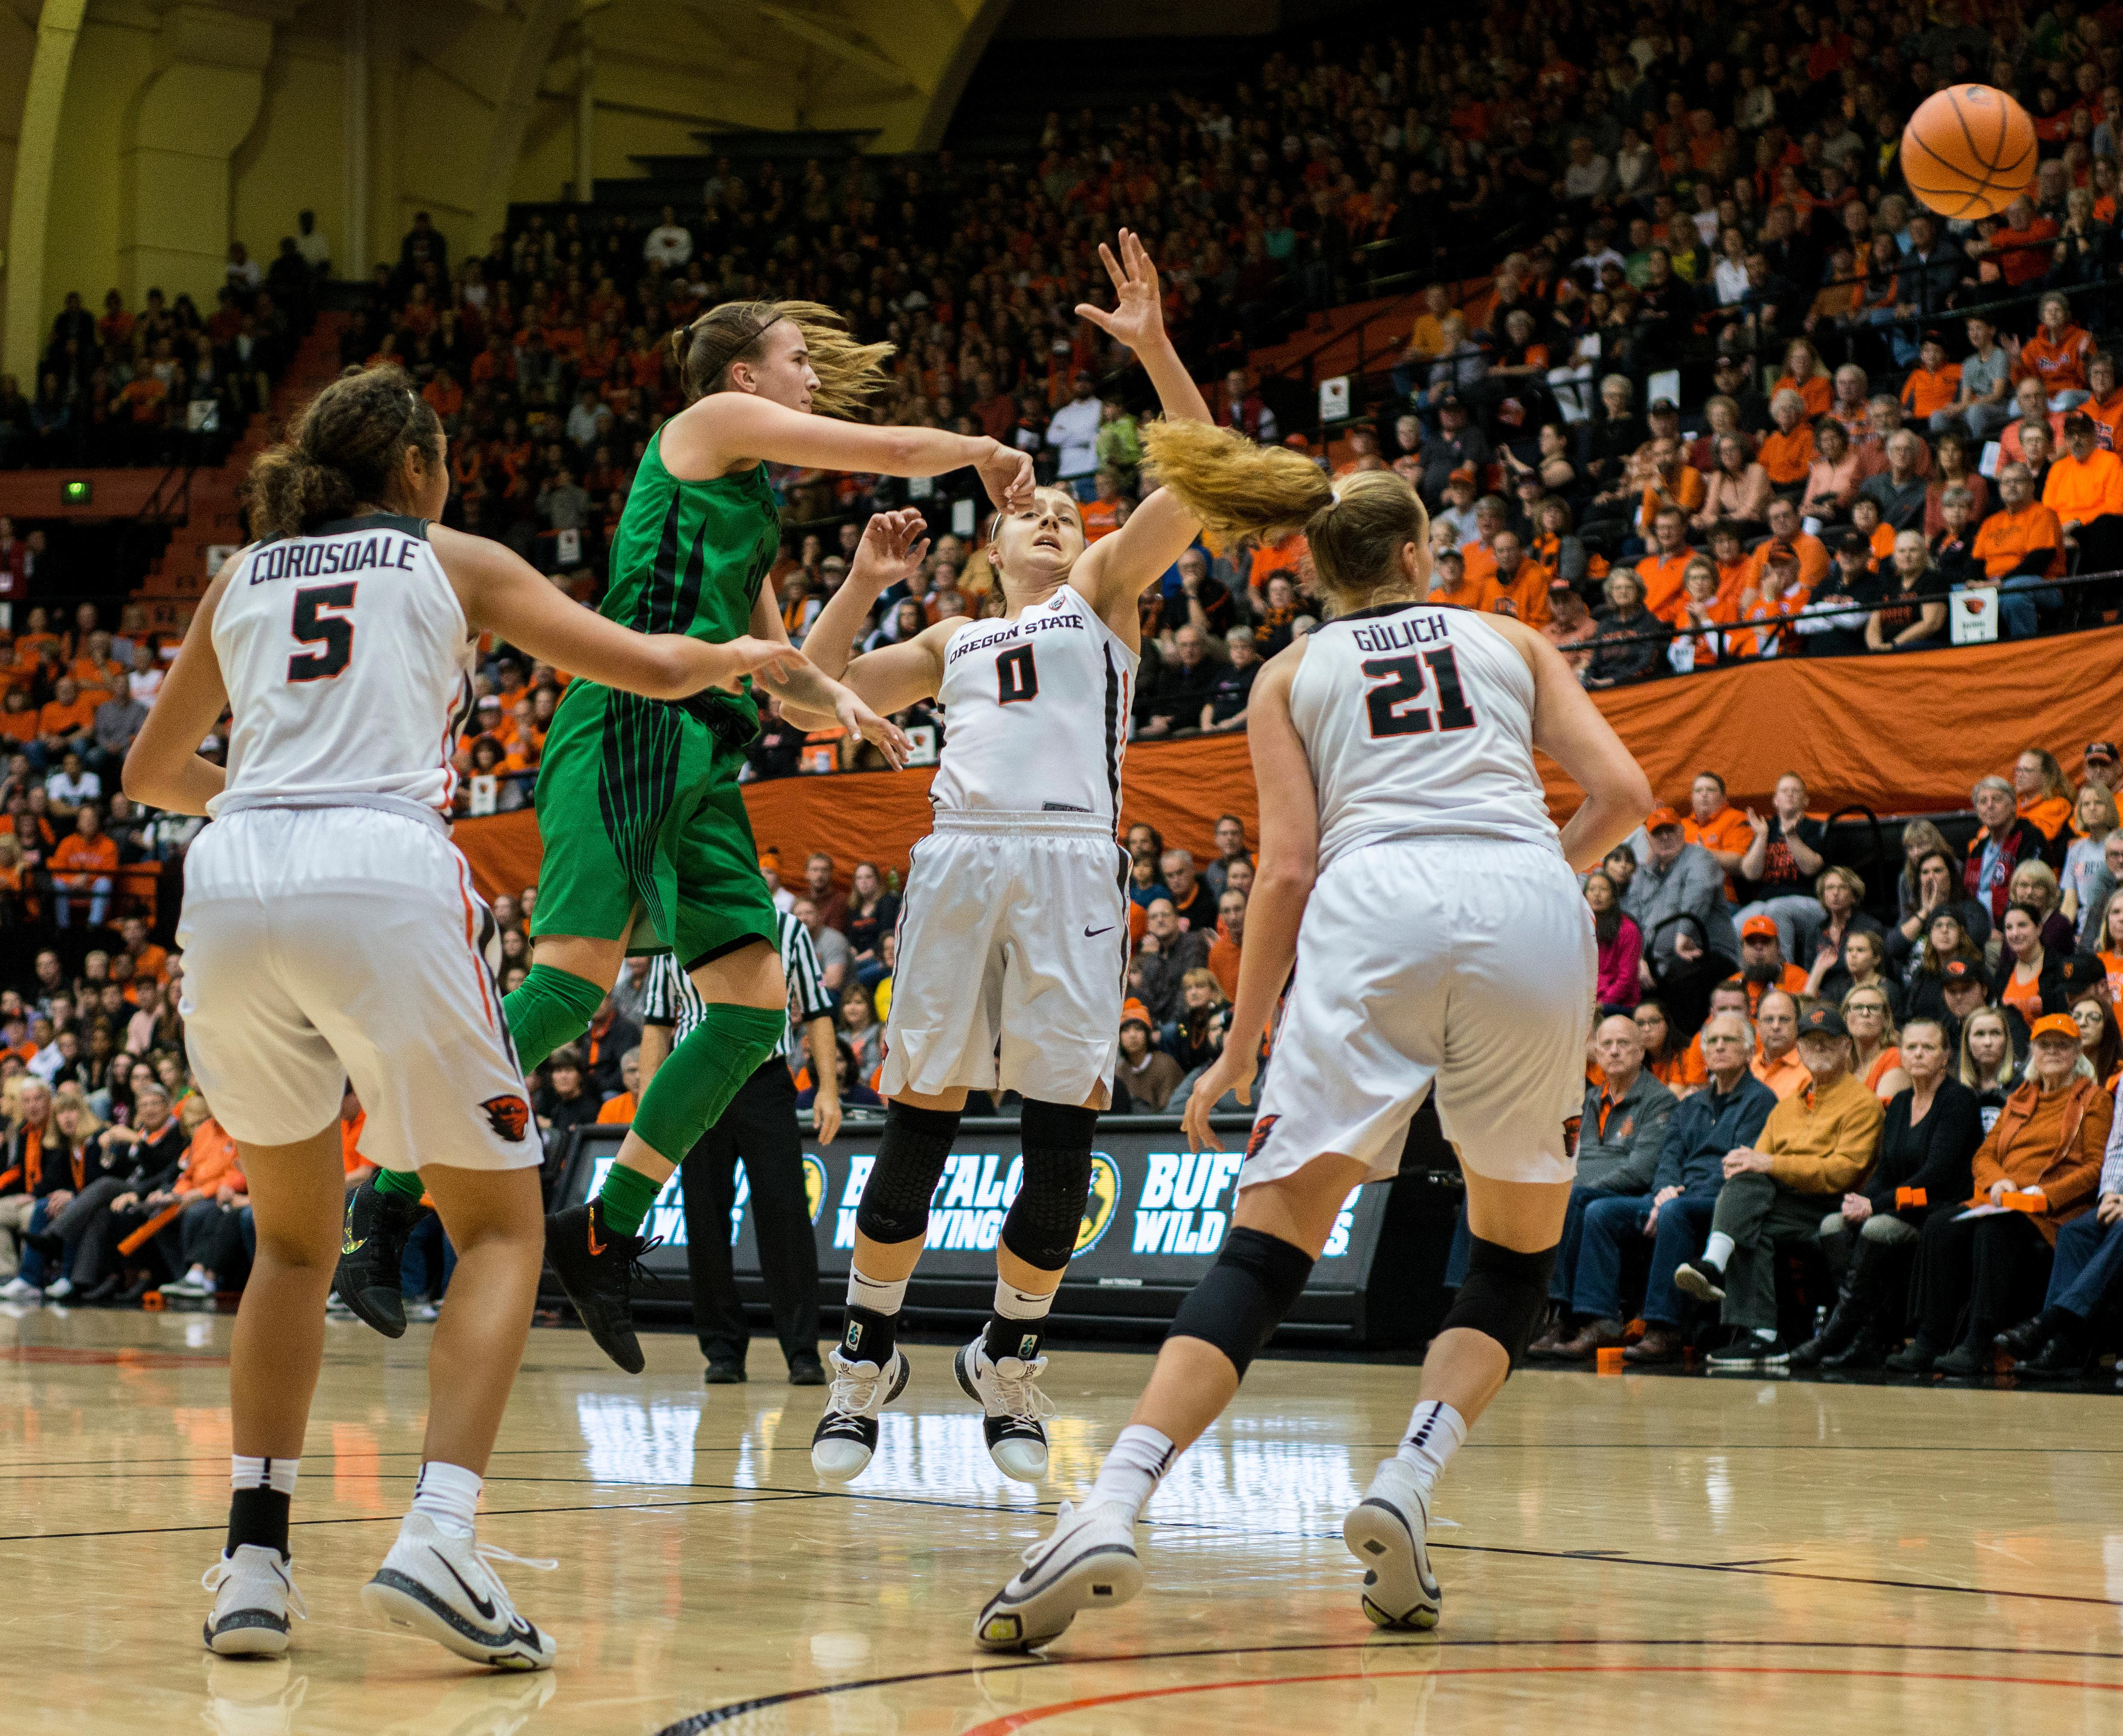 Oregon Ducks guard Sabrina Ionescu (#20) passes hard and fast as Oregon State Beavers guard Mikayla Pivec (#0) dodges the ball.The Oregon Ducks were defeated by the Oregon State Beavers 85-79 on Friday night in Corvallis. Sabrina Ionescu scored 35 points and Ruthy Hebard added 24. The Ducks will face the Beavers this Sunday at 5 p.m. at Matthew Knight Arena. Photo by Abigail Winn, Oregon News Lab